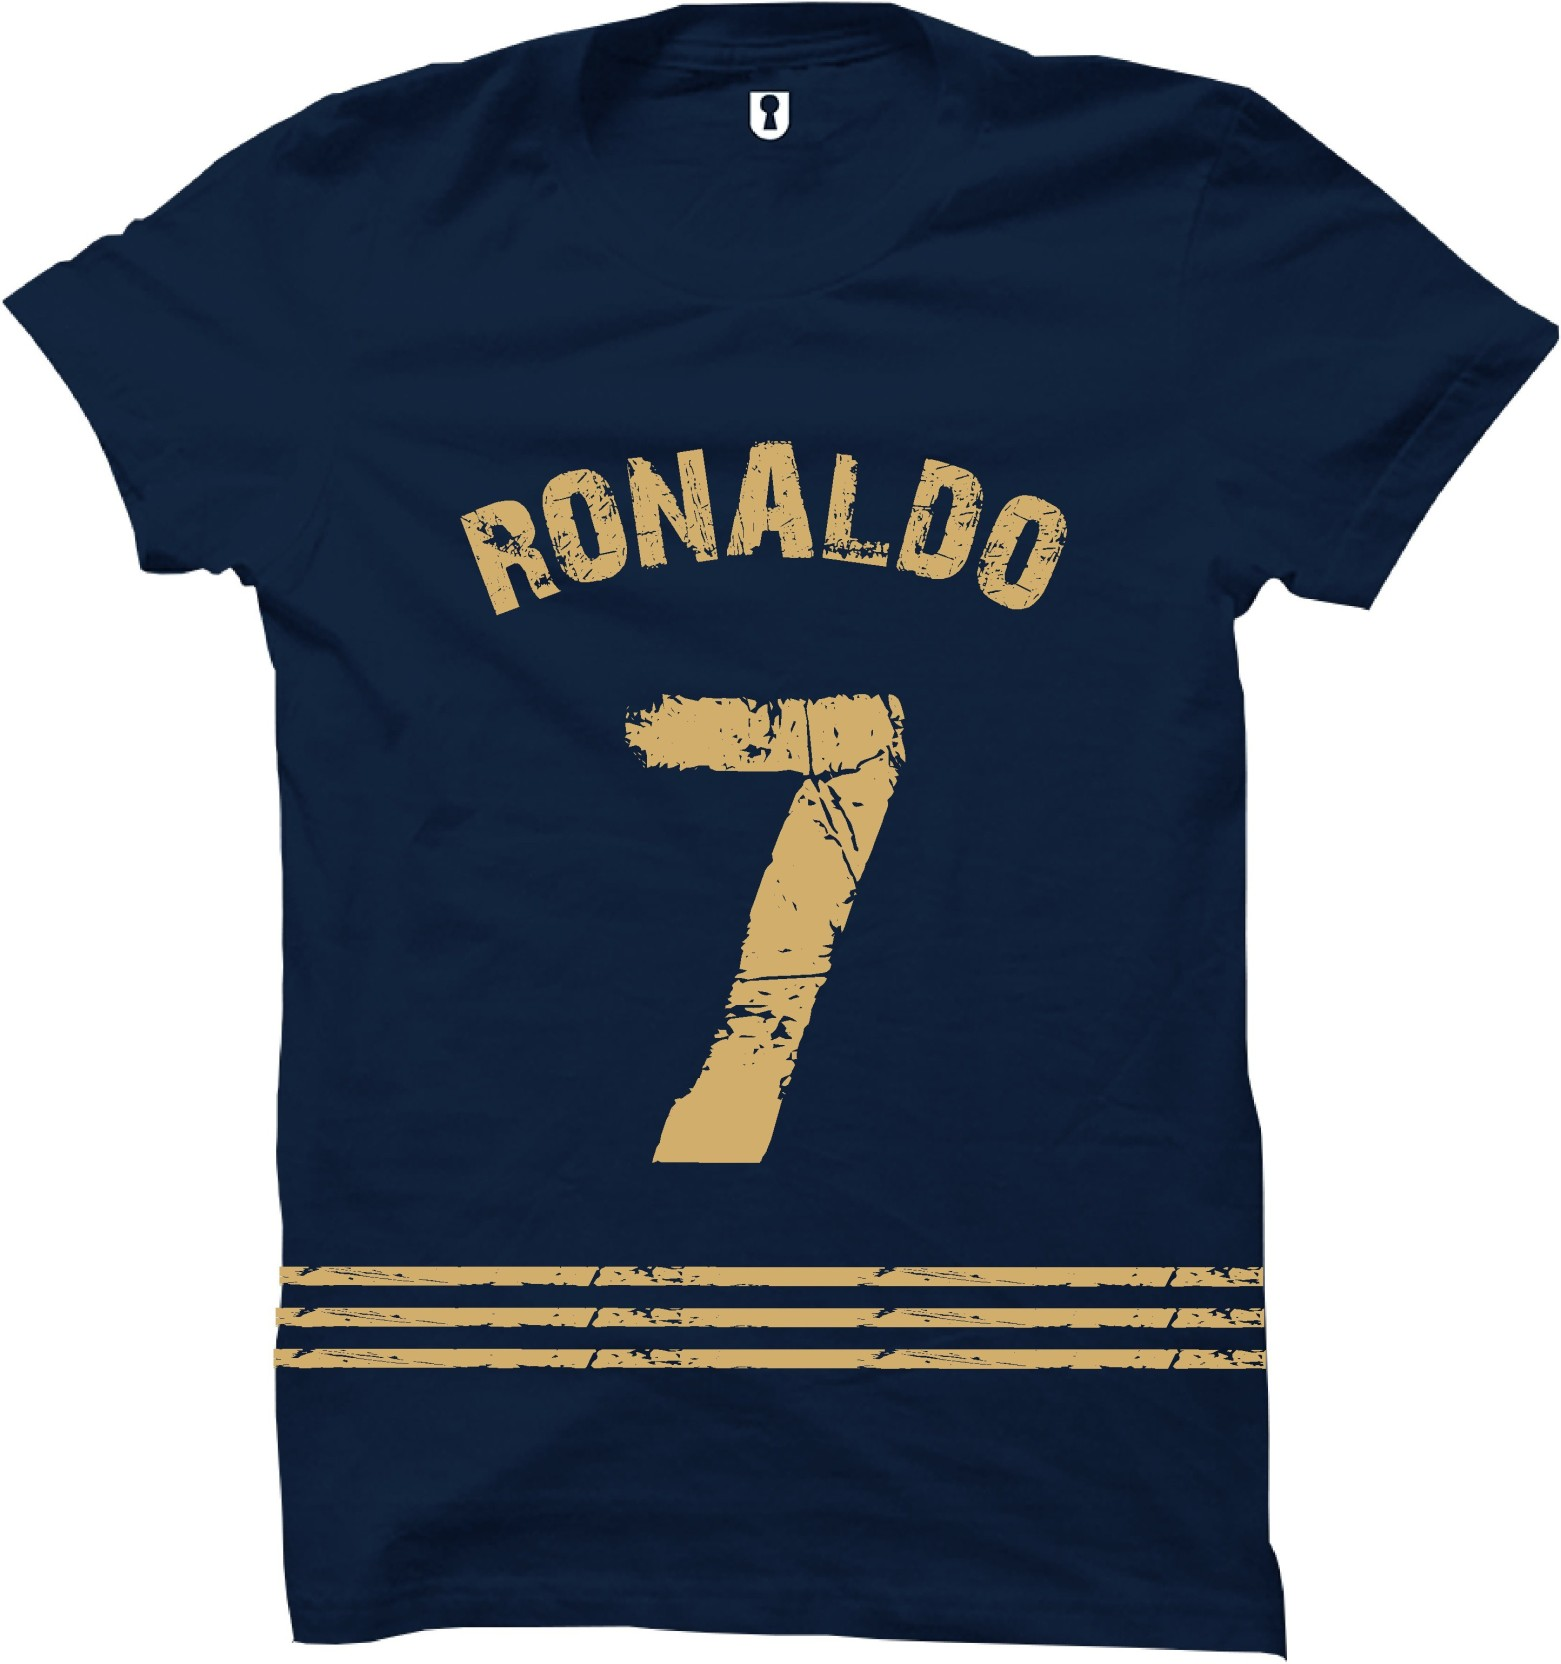 low priced 21a9e 587df Ronaldo Printed T Shirt India